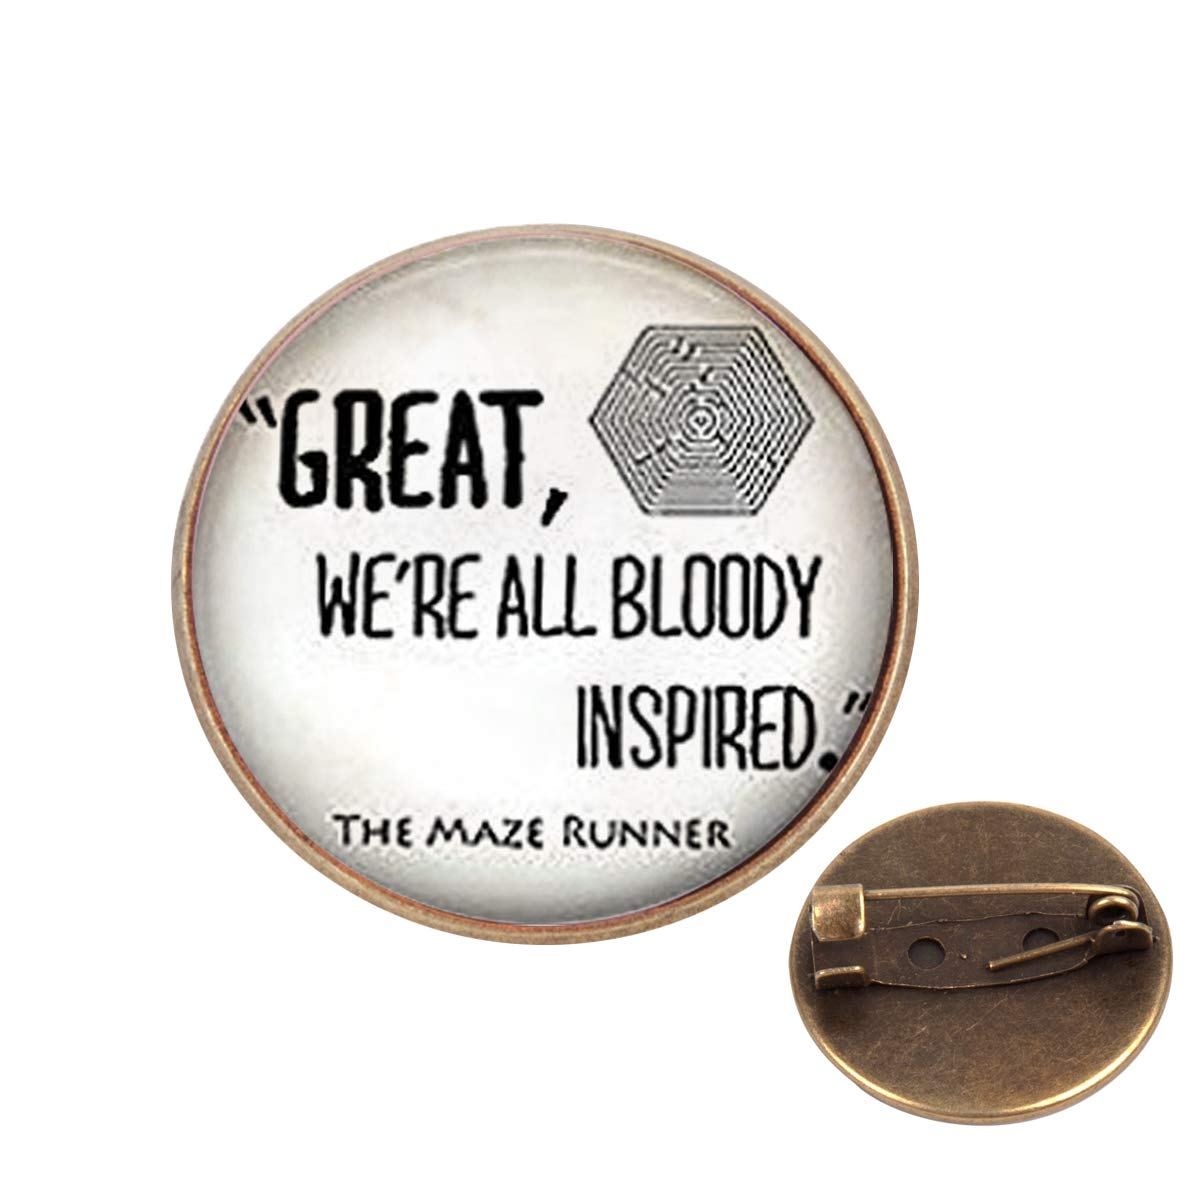 Pinback Buttons Badges Pins Maze Runner Quote Lapel Pin Brooch Clip Trendy Accessory Jacket T-Shirt Bag Hat Shoe